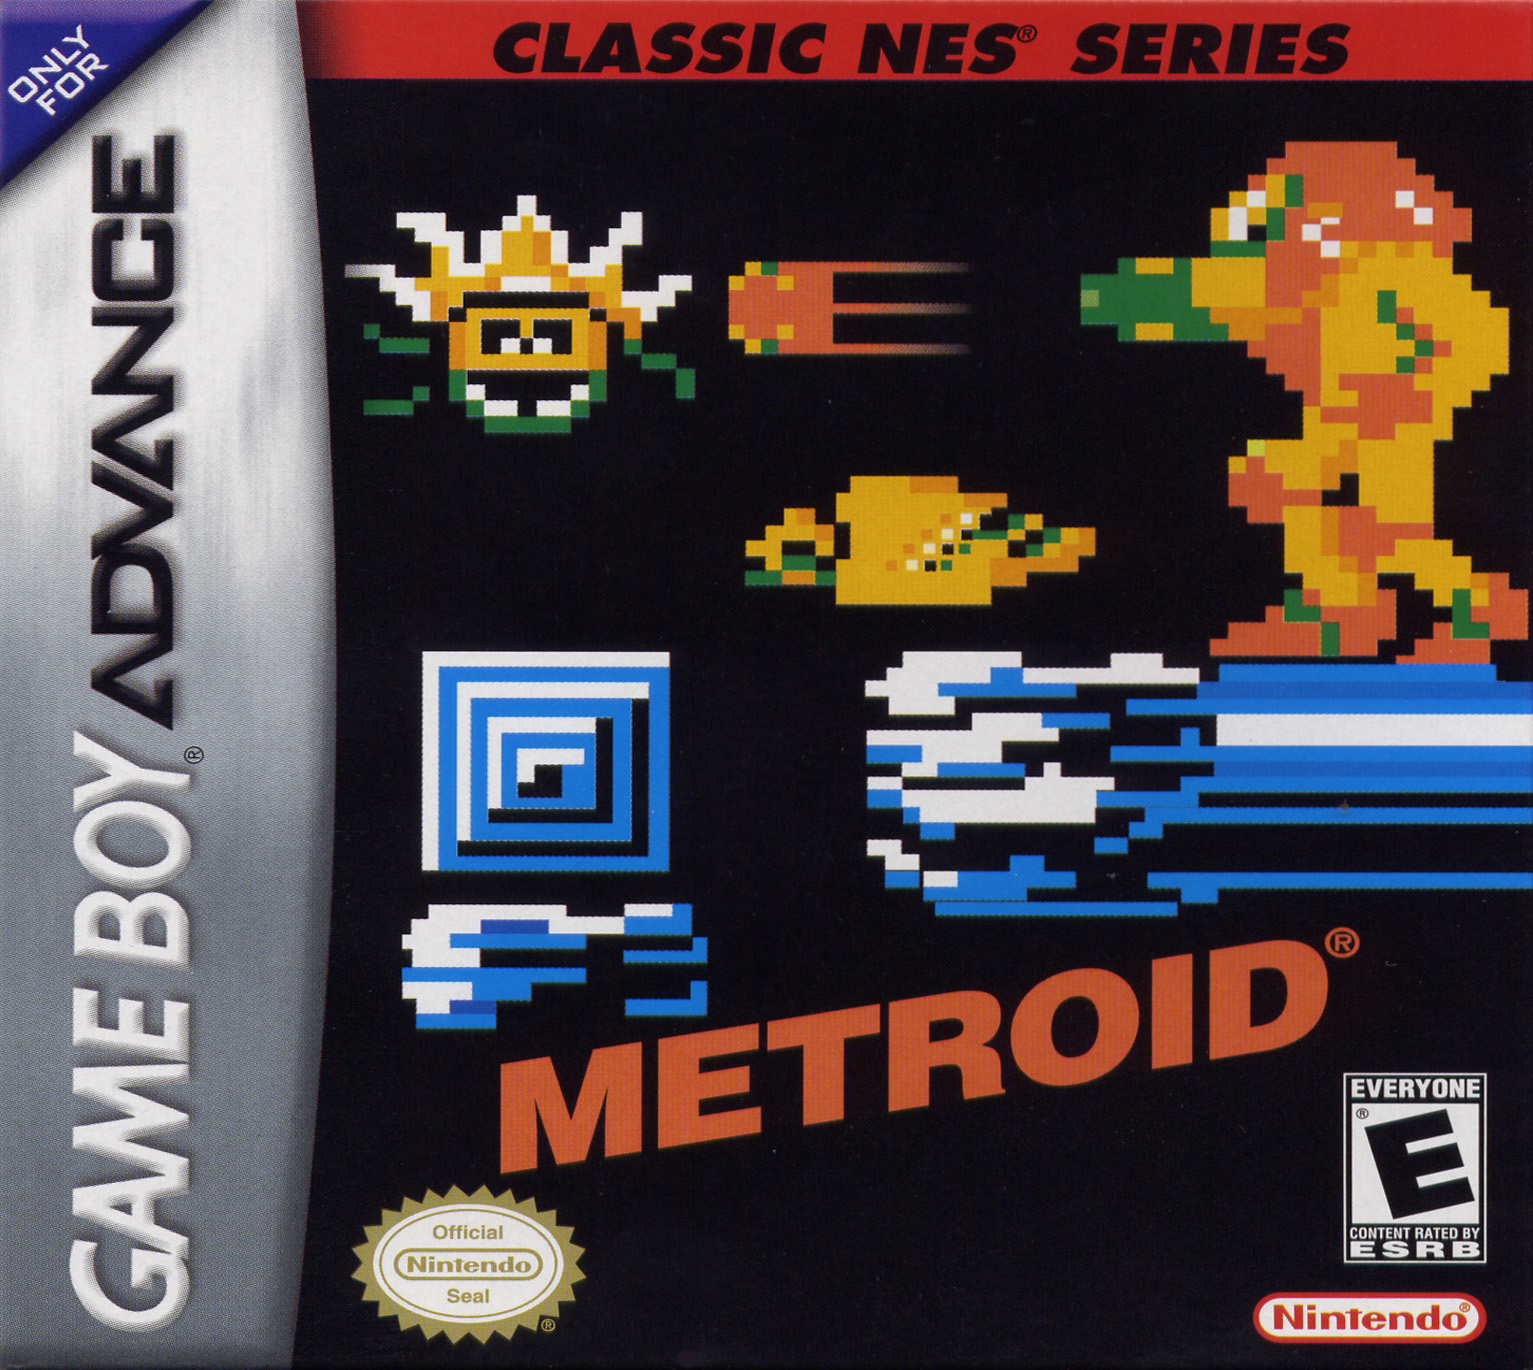 TGDB - Browse - Game - Classic NES Series: Metroid